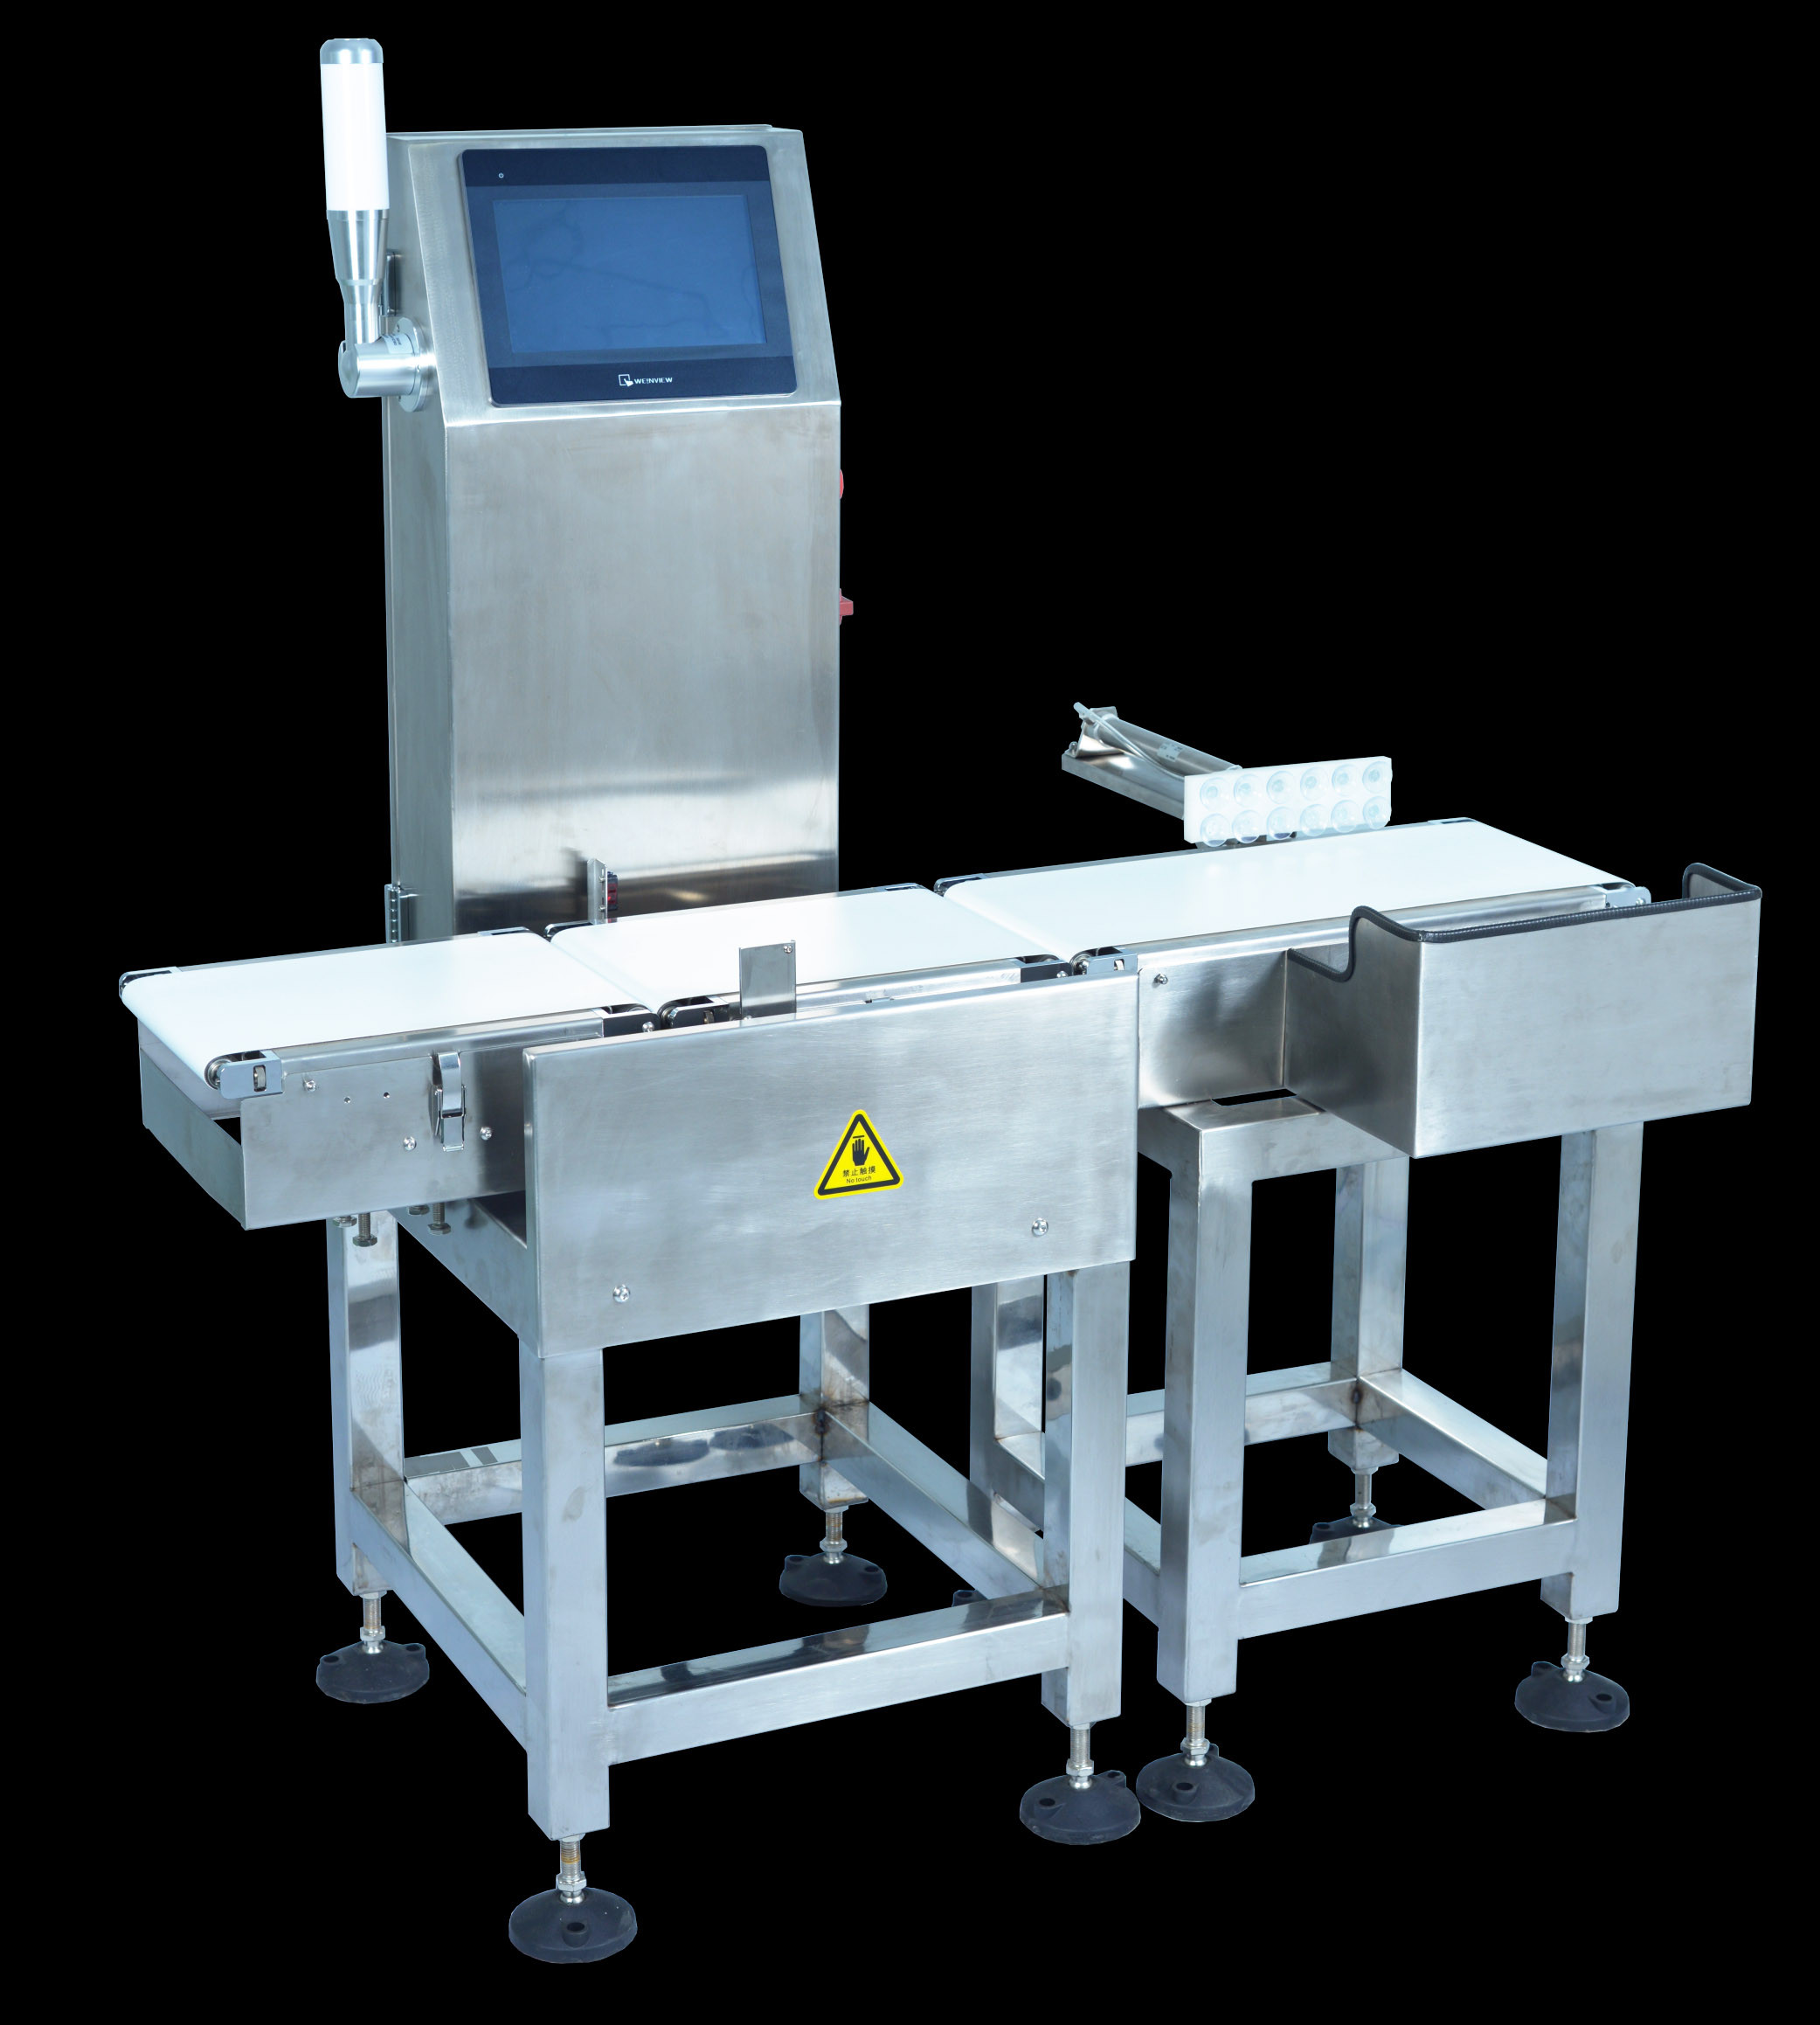 How to recommend a suitable automatic checkweigher to me?